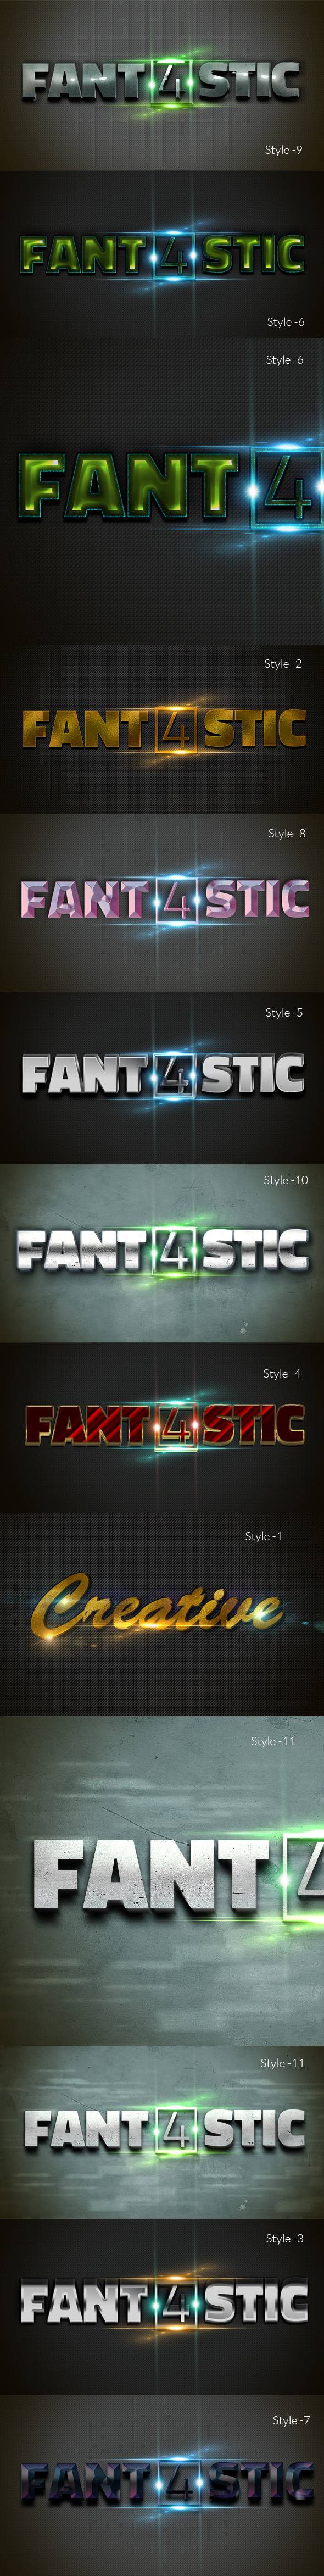 3D Photoshop Layer Style Text Effects - Text Effects Actions